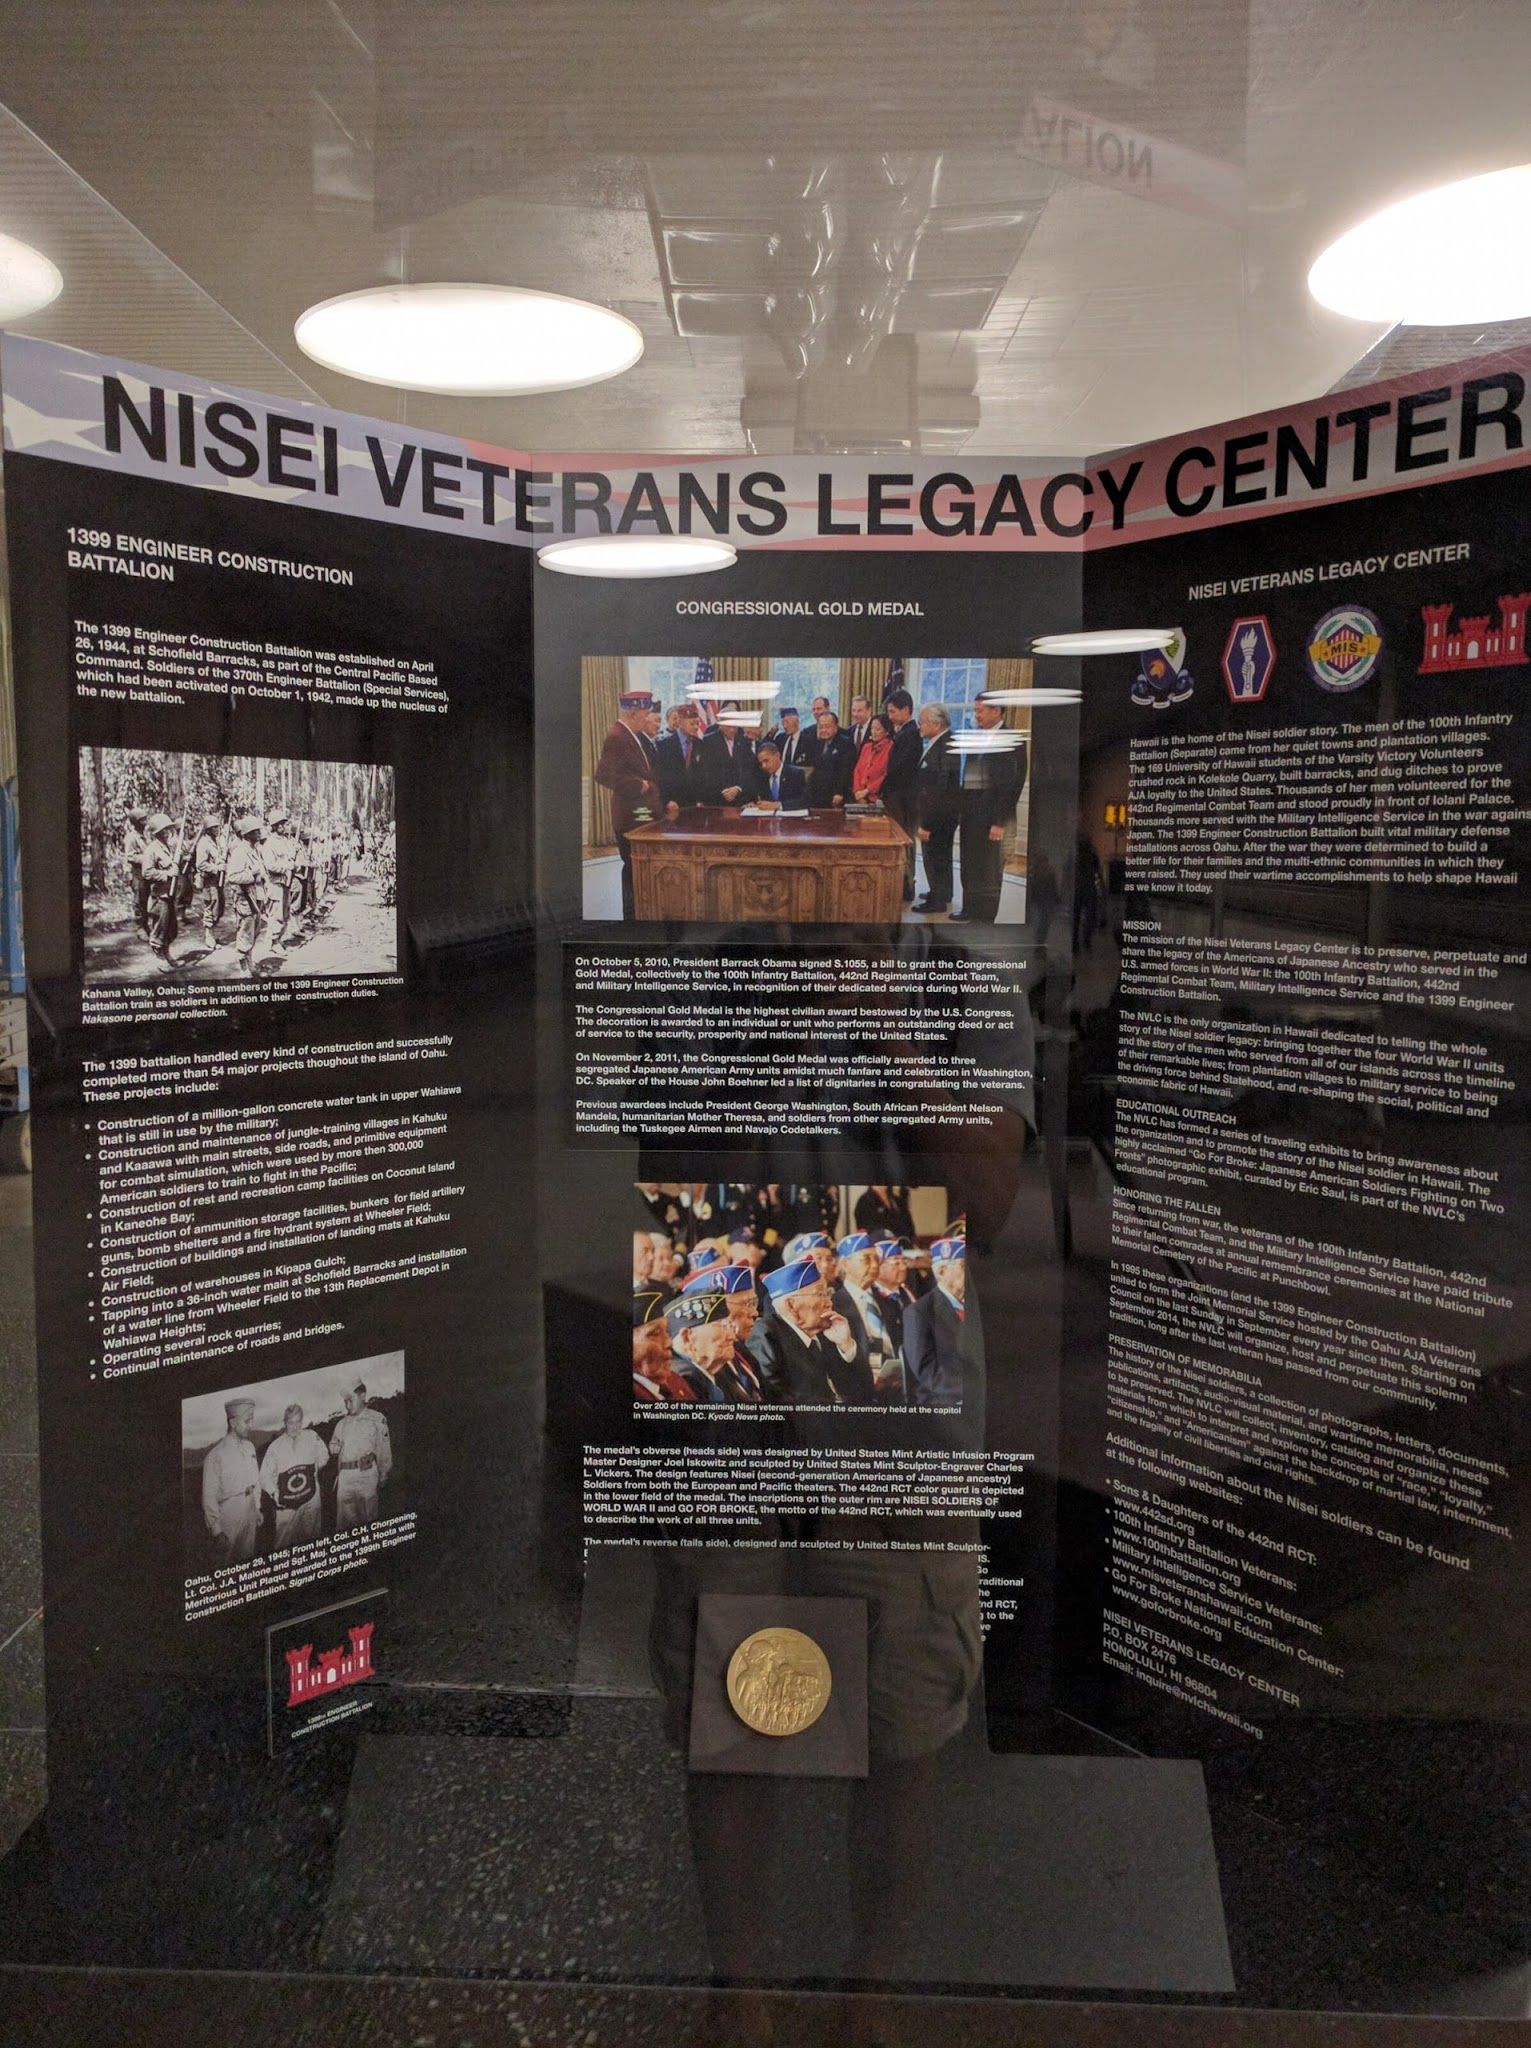 It's always nice to remember the contributions of Japanese Nisei veterans in military service, just as much as it is to remember that while they served in the military, there are others that were in internment camps: https://plus.google.com/+AlbertNakano/posts/6TEiQiCe956 https://goo.gl/hVQiXu